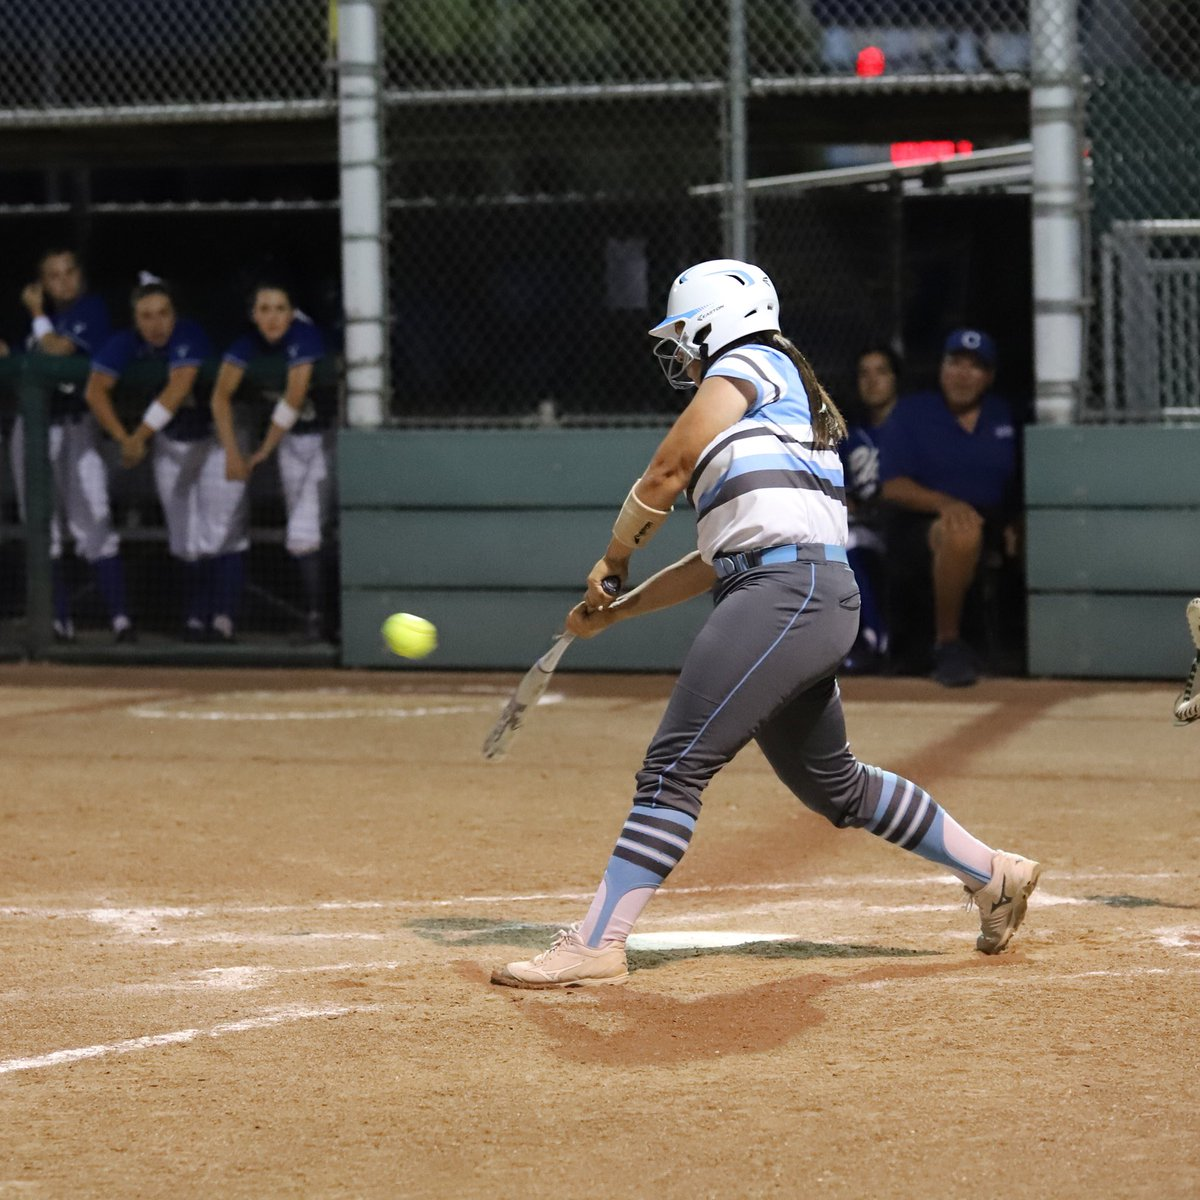 Tonight our CN alum Madi Avery will represent CN softball for one last time as she plays in the City/County game. The game is at Fresno State &amp; the ceremony starts at 6:45 pm. Also our very own Coach Dale is getting inducted into the City County Hall of Fame!! #BroncoStrong<br>http://pic.twitter.com/eYKJw6UU9Y